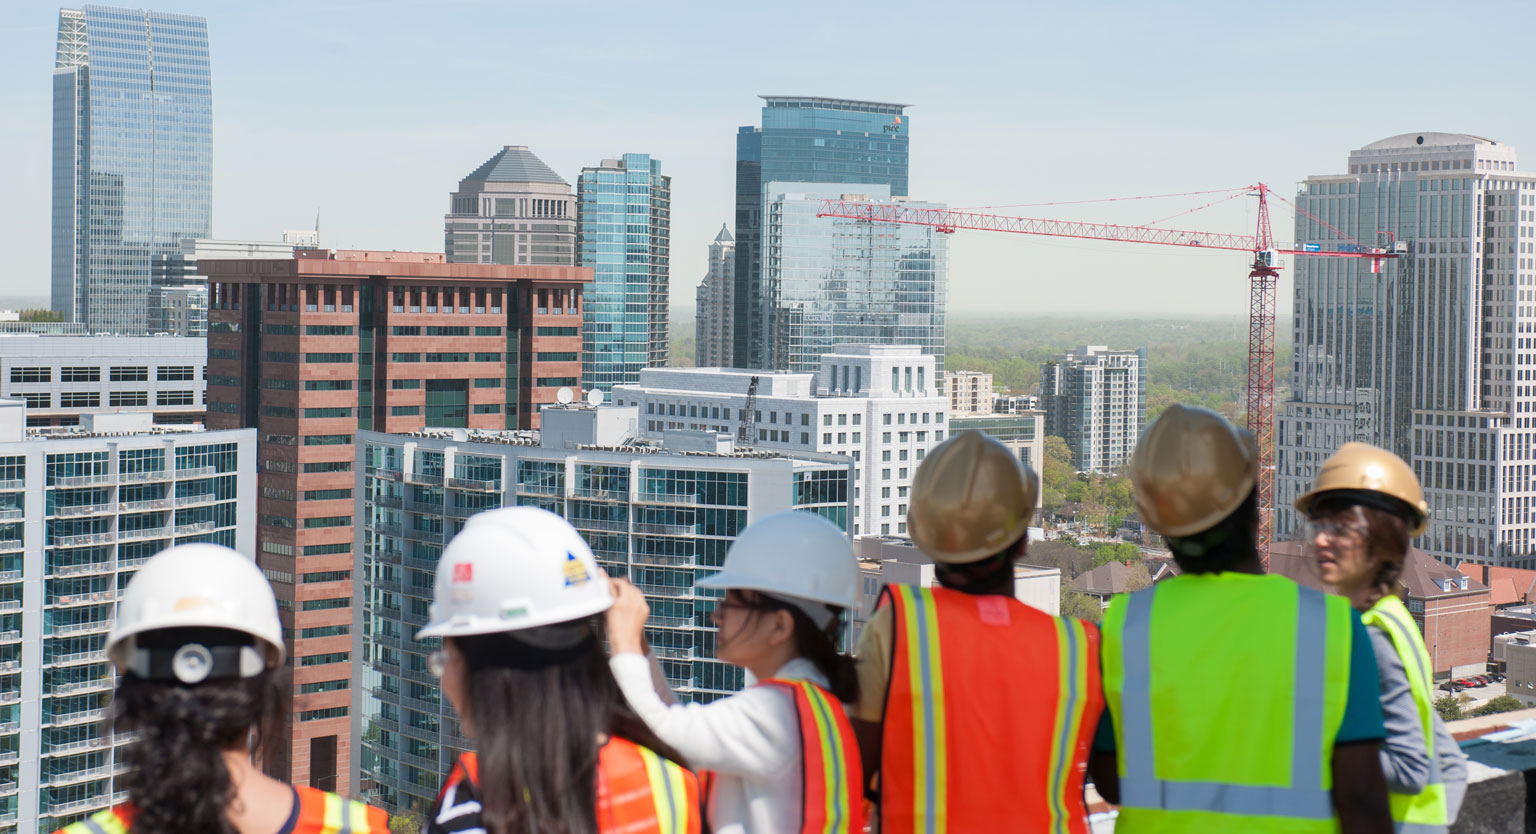 Students looking at a city view from the rooftop of a construction site.